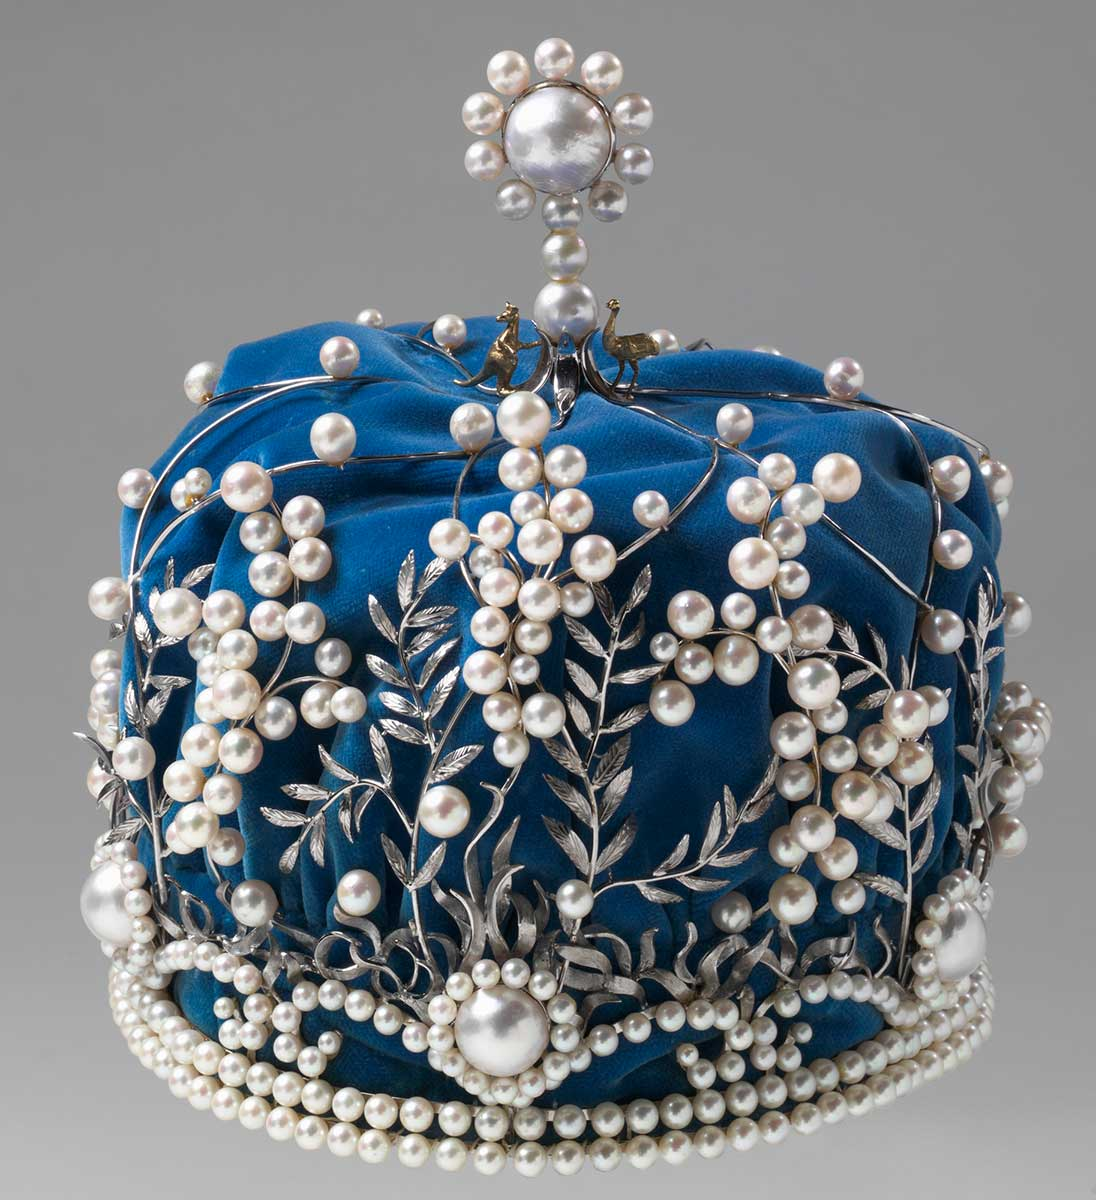 Crown with pearls as wattle flowers and silver leaves, over a blue fabric base. A silver kangaroo and emu stand either side of a larger pearl at the top of the crown. - click to view larger image